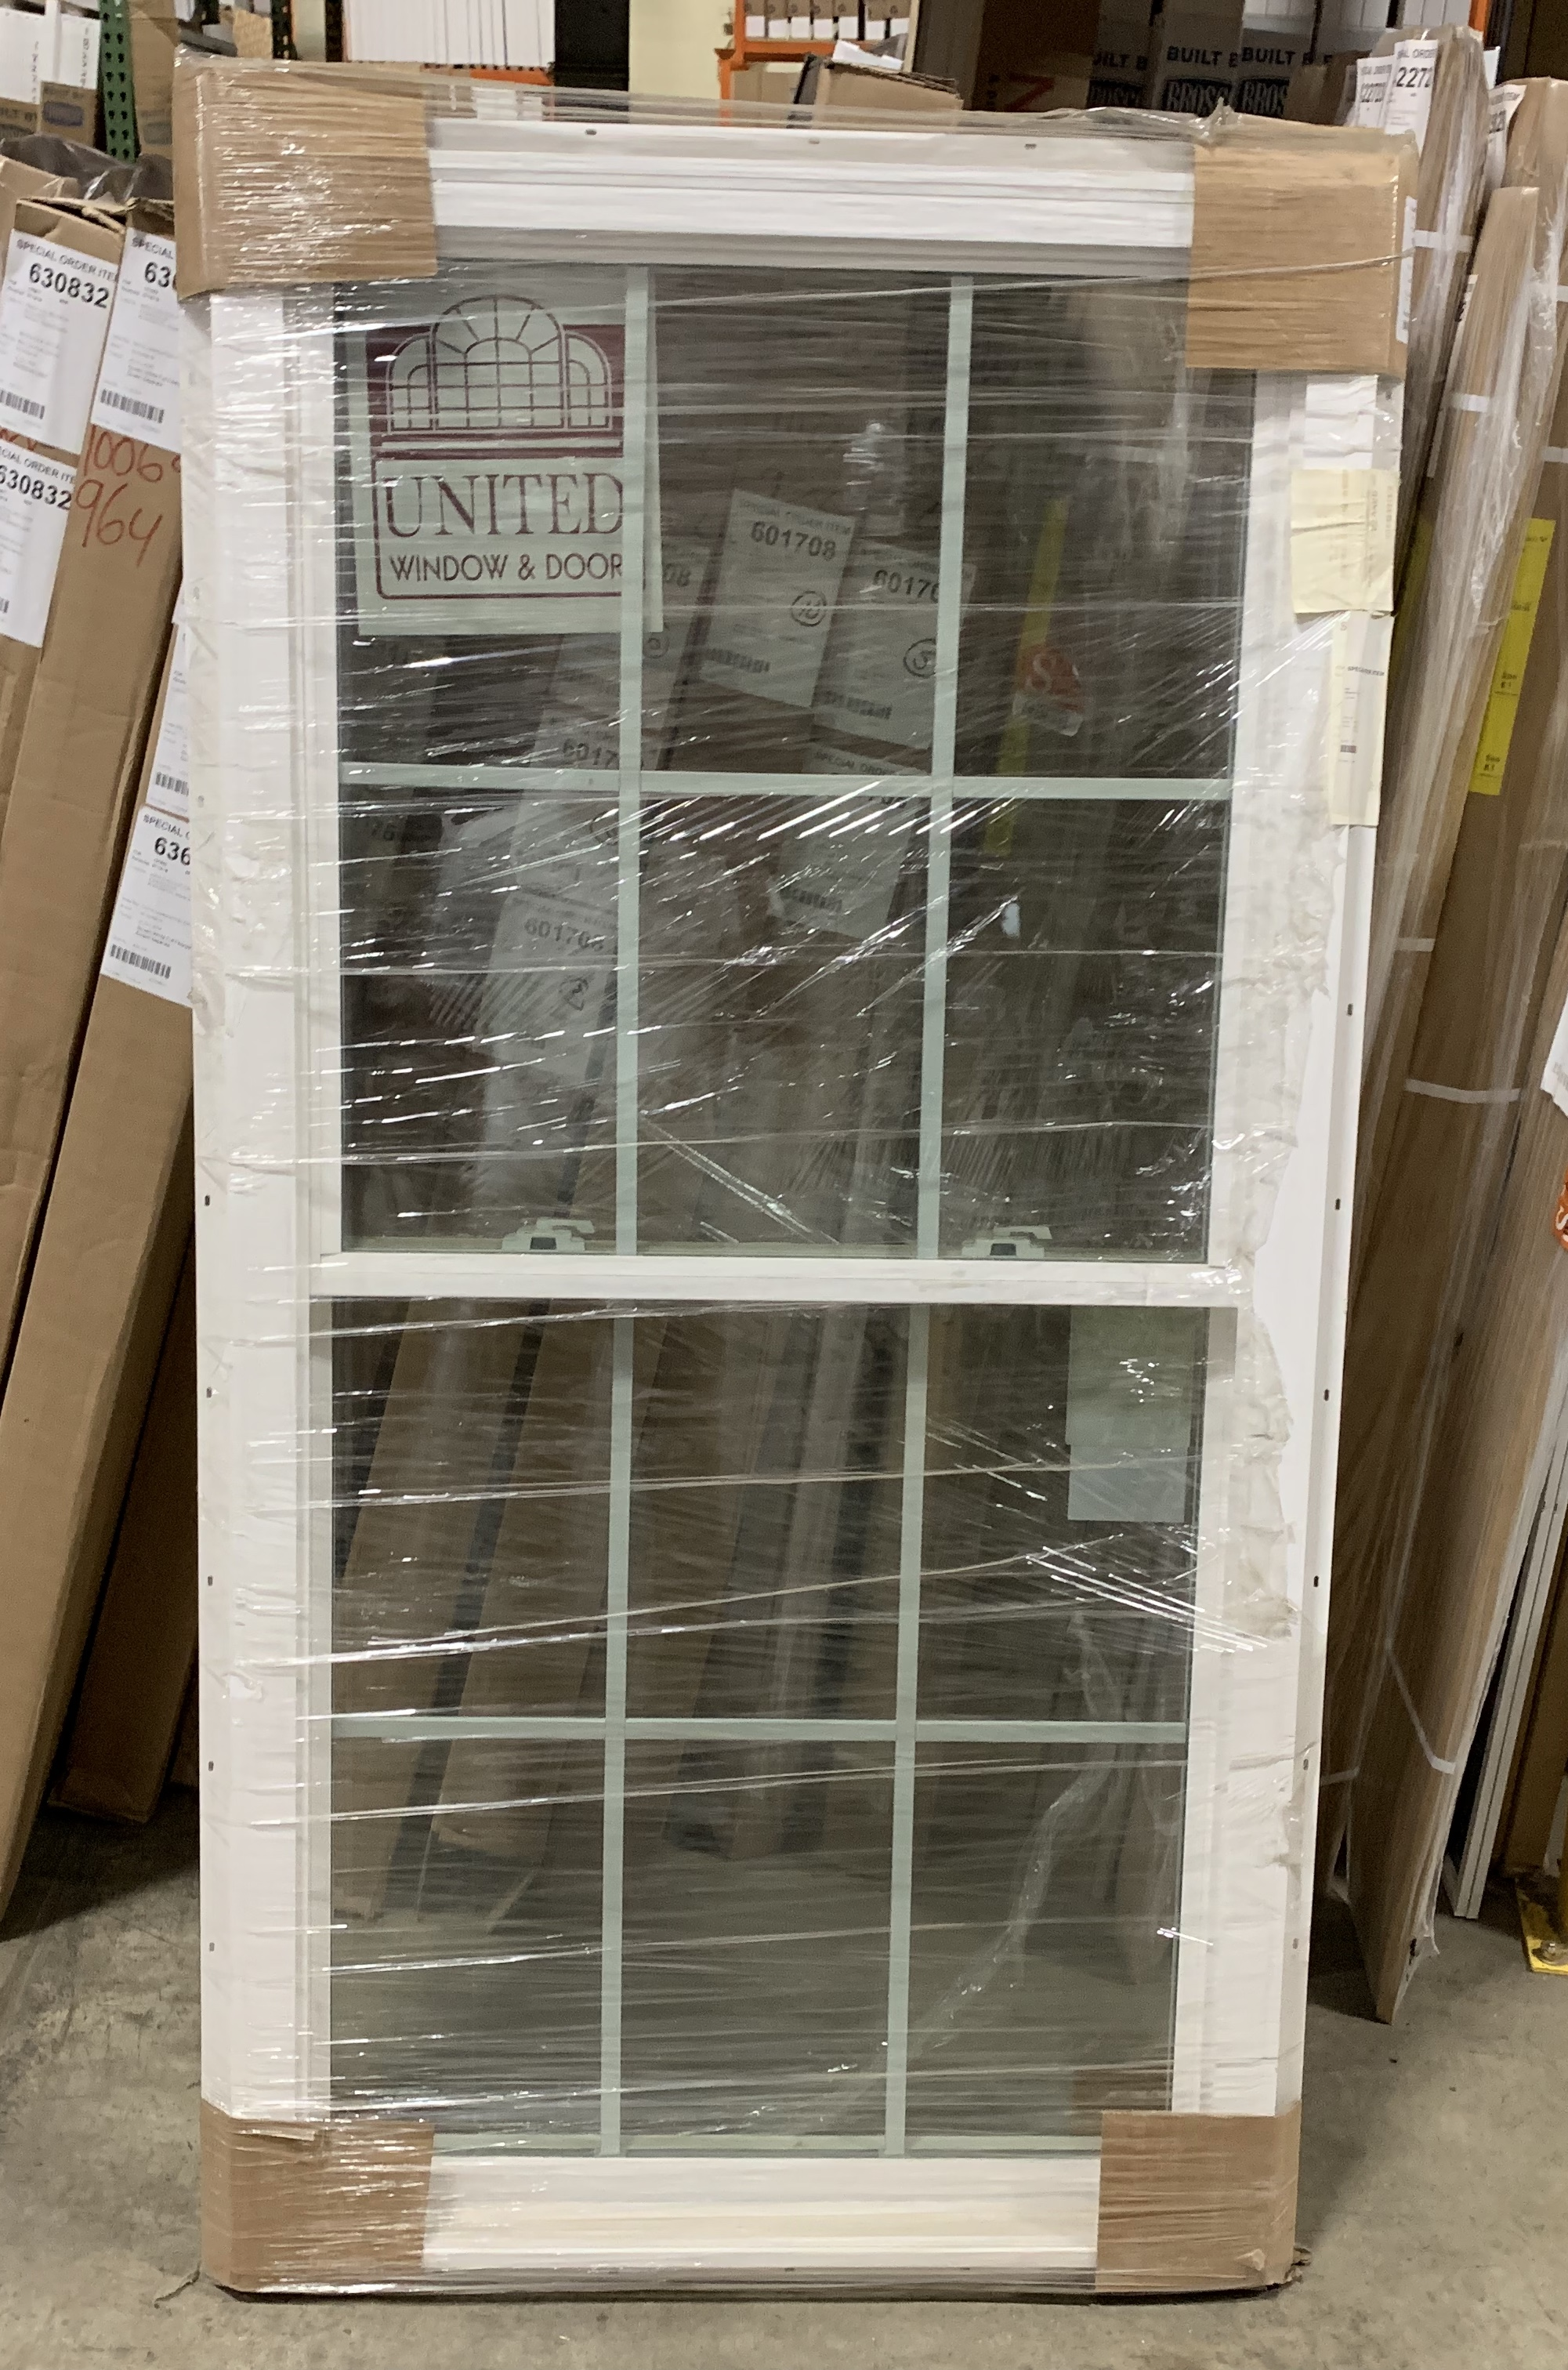 United 55DH Double Glazing Window w/Grids